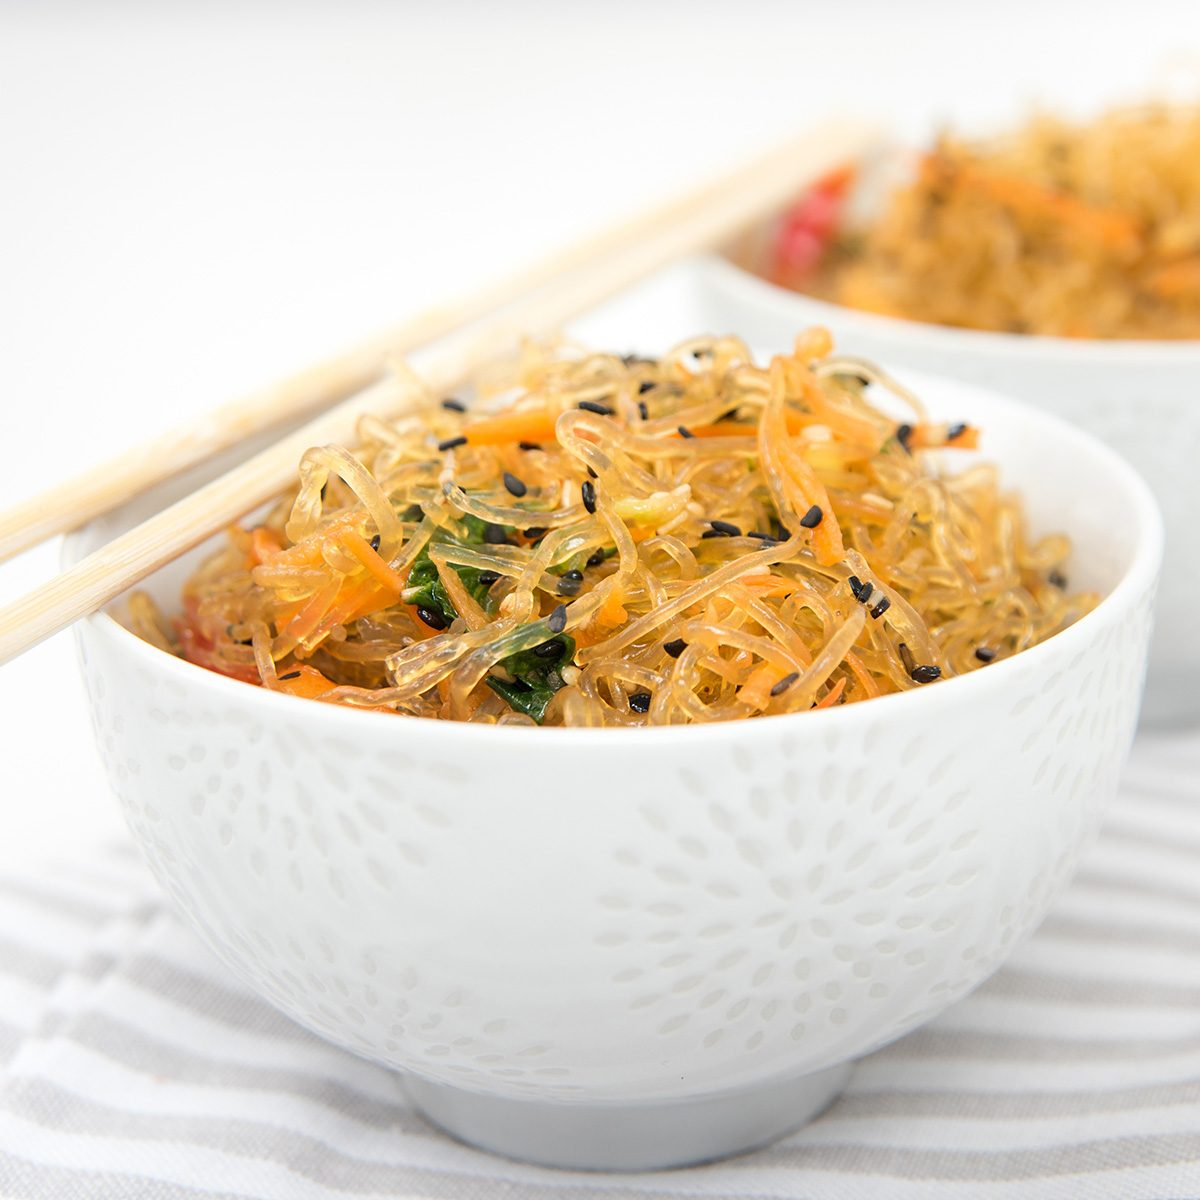 Asian Cuisine Inspired Kelp Noodle Salad with Vegetable and Sesame Seeds